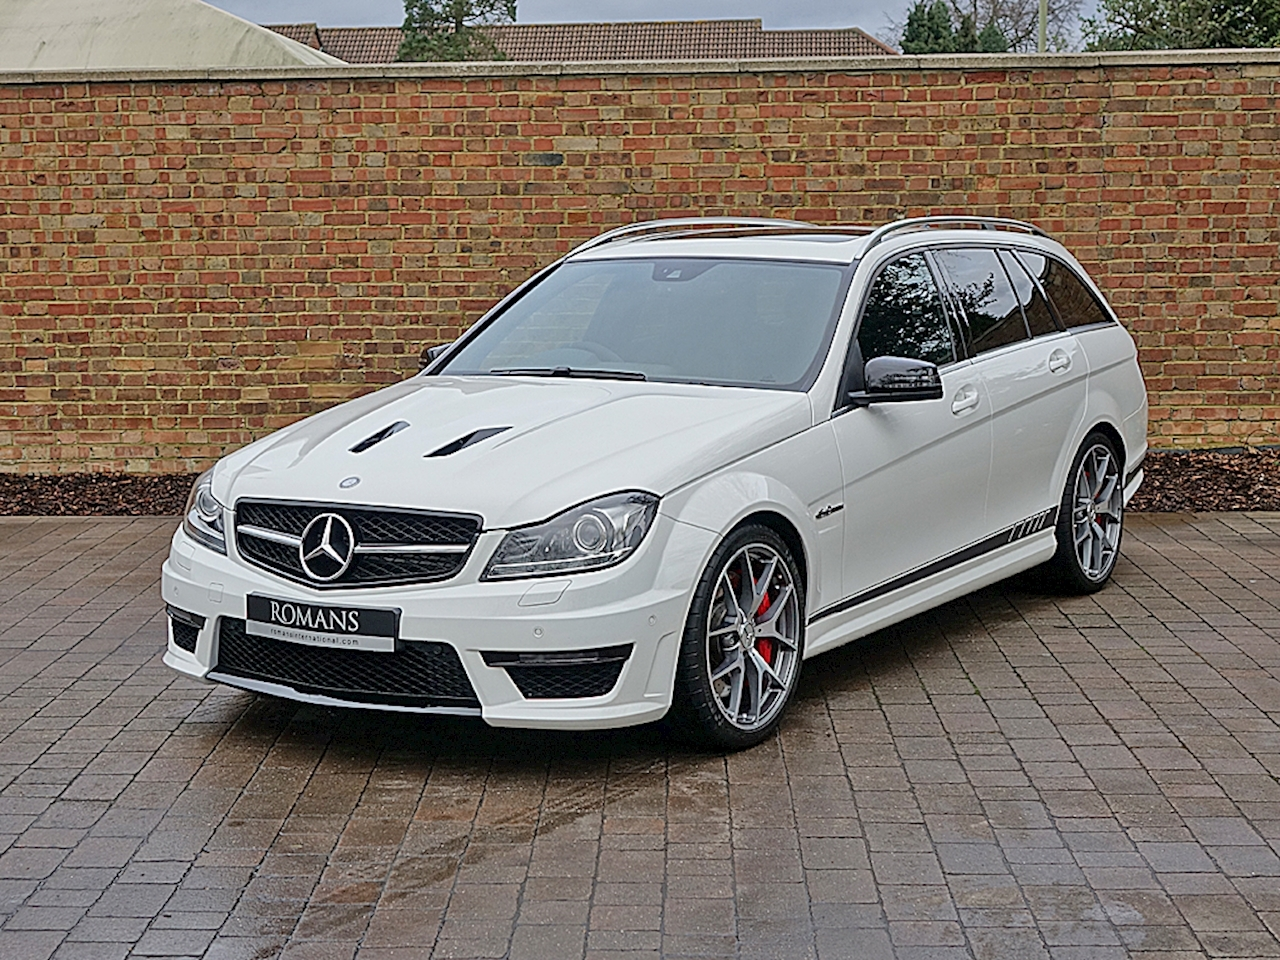 2013 used mercedes c63 amg estate edition 5 polar white. Black Bedroom Furniture Sets. Home Design Ideas